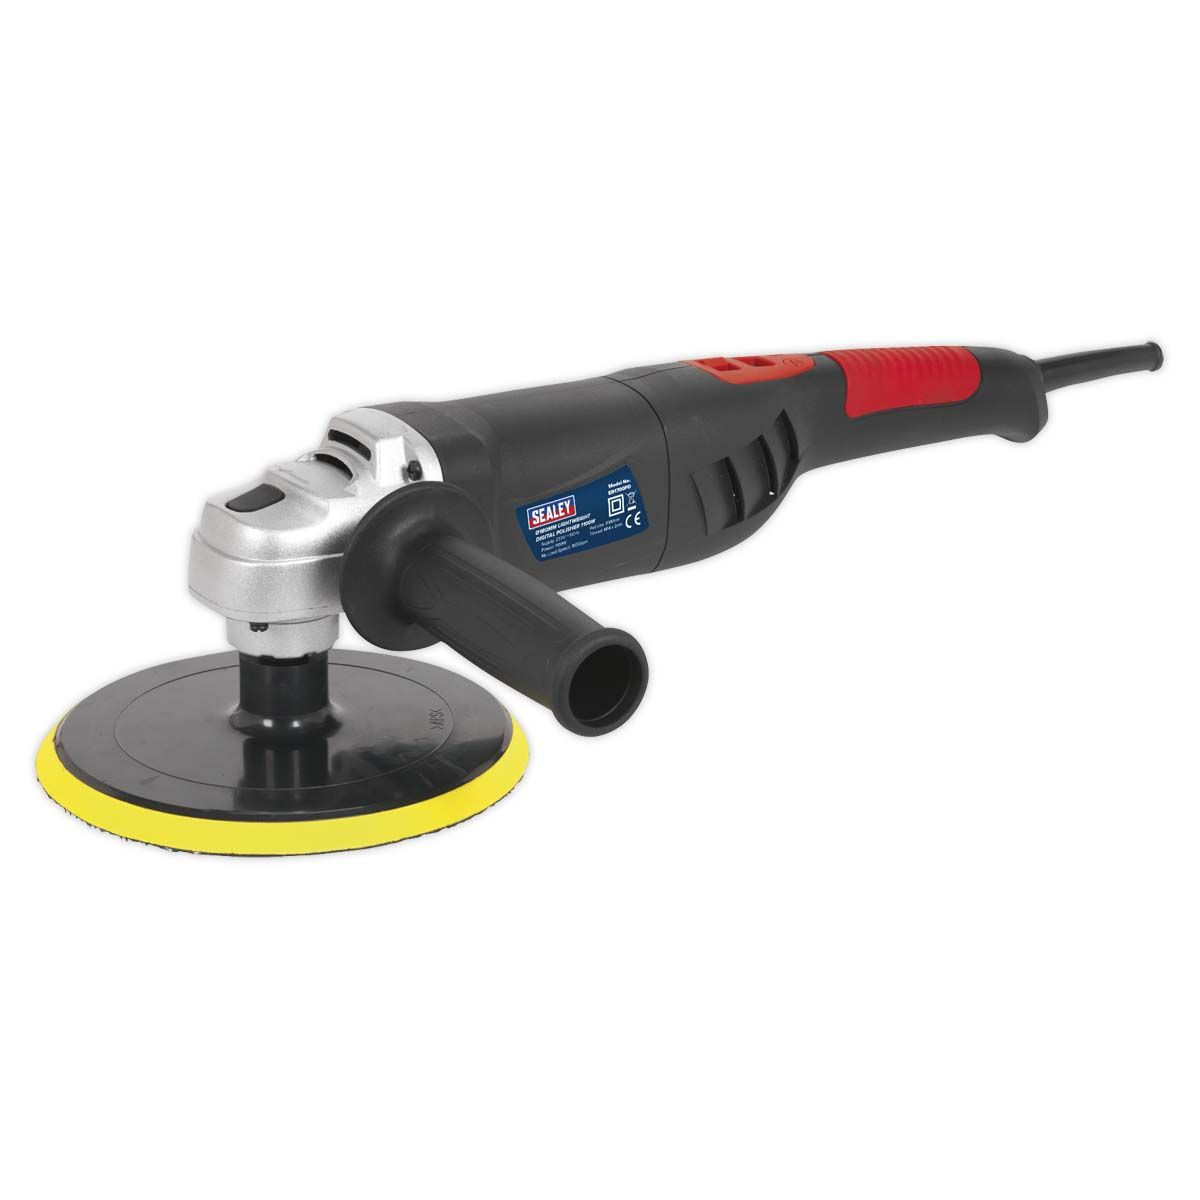 Sealey Polisher Digital Ø180mm 1100W/230V Lightweight